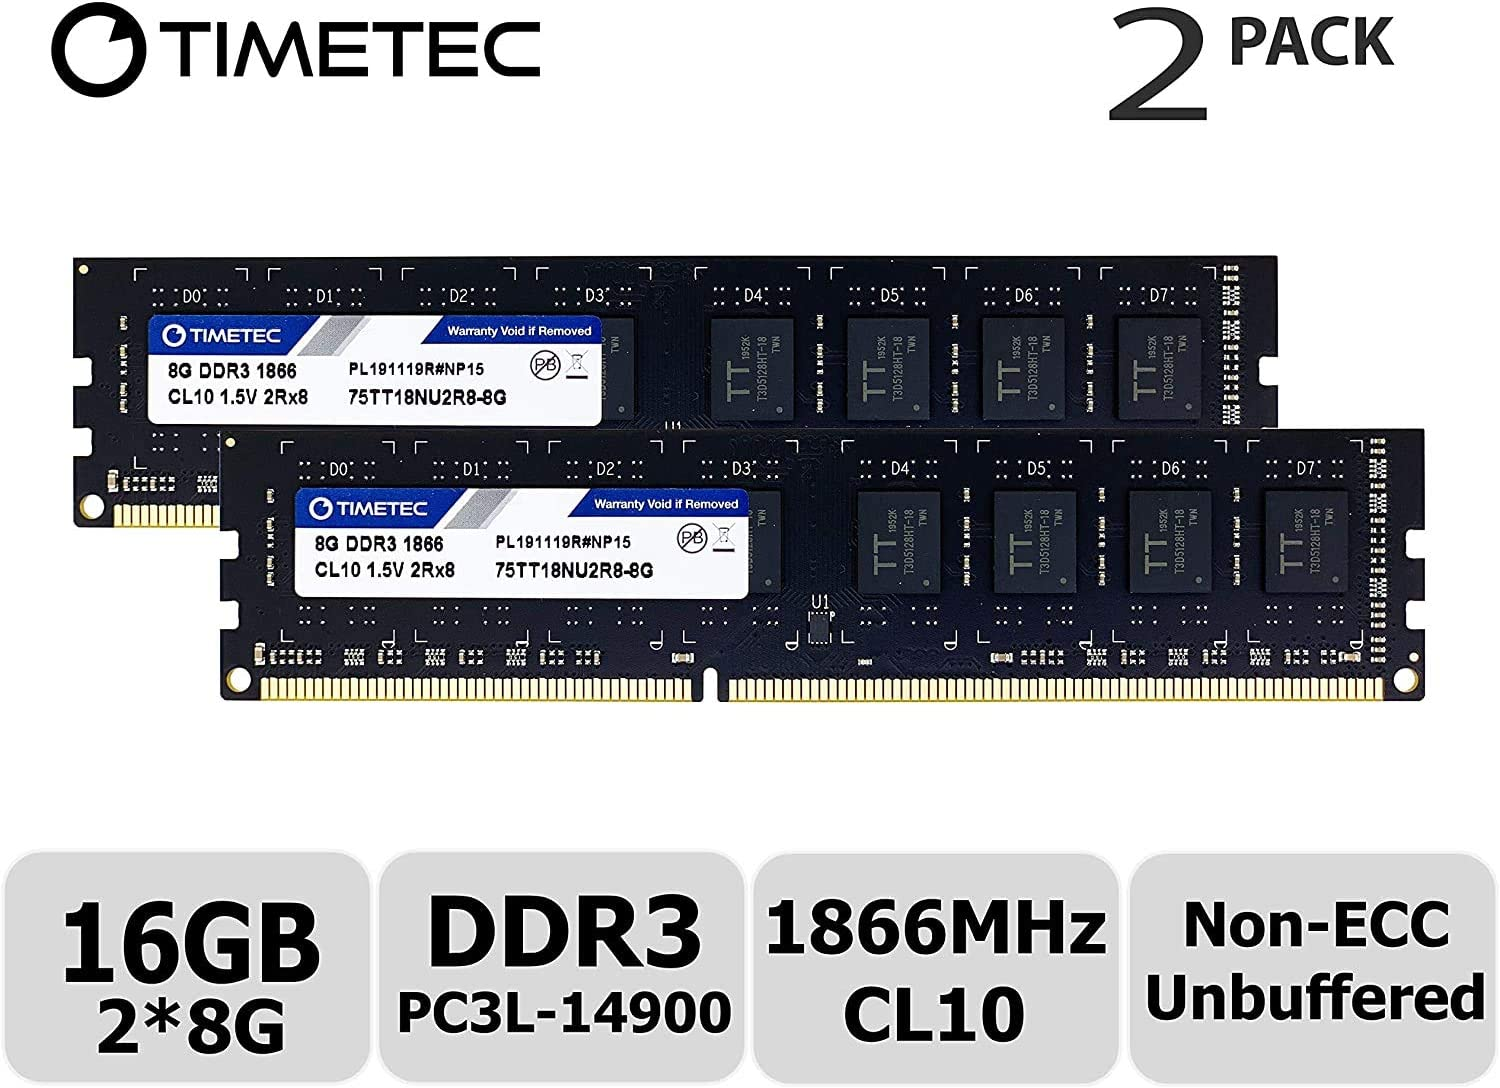 Timetec Hynix IC DDR3 1866MHz PC3-14900 Unbuffered Non-ECC 1.5V CL10 2Rx8 Dual Rank 240 Pin UDIMM Desktop Memory RAM Module Upgrade (16GB Kit (2x8GB))